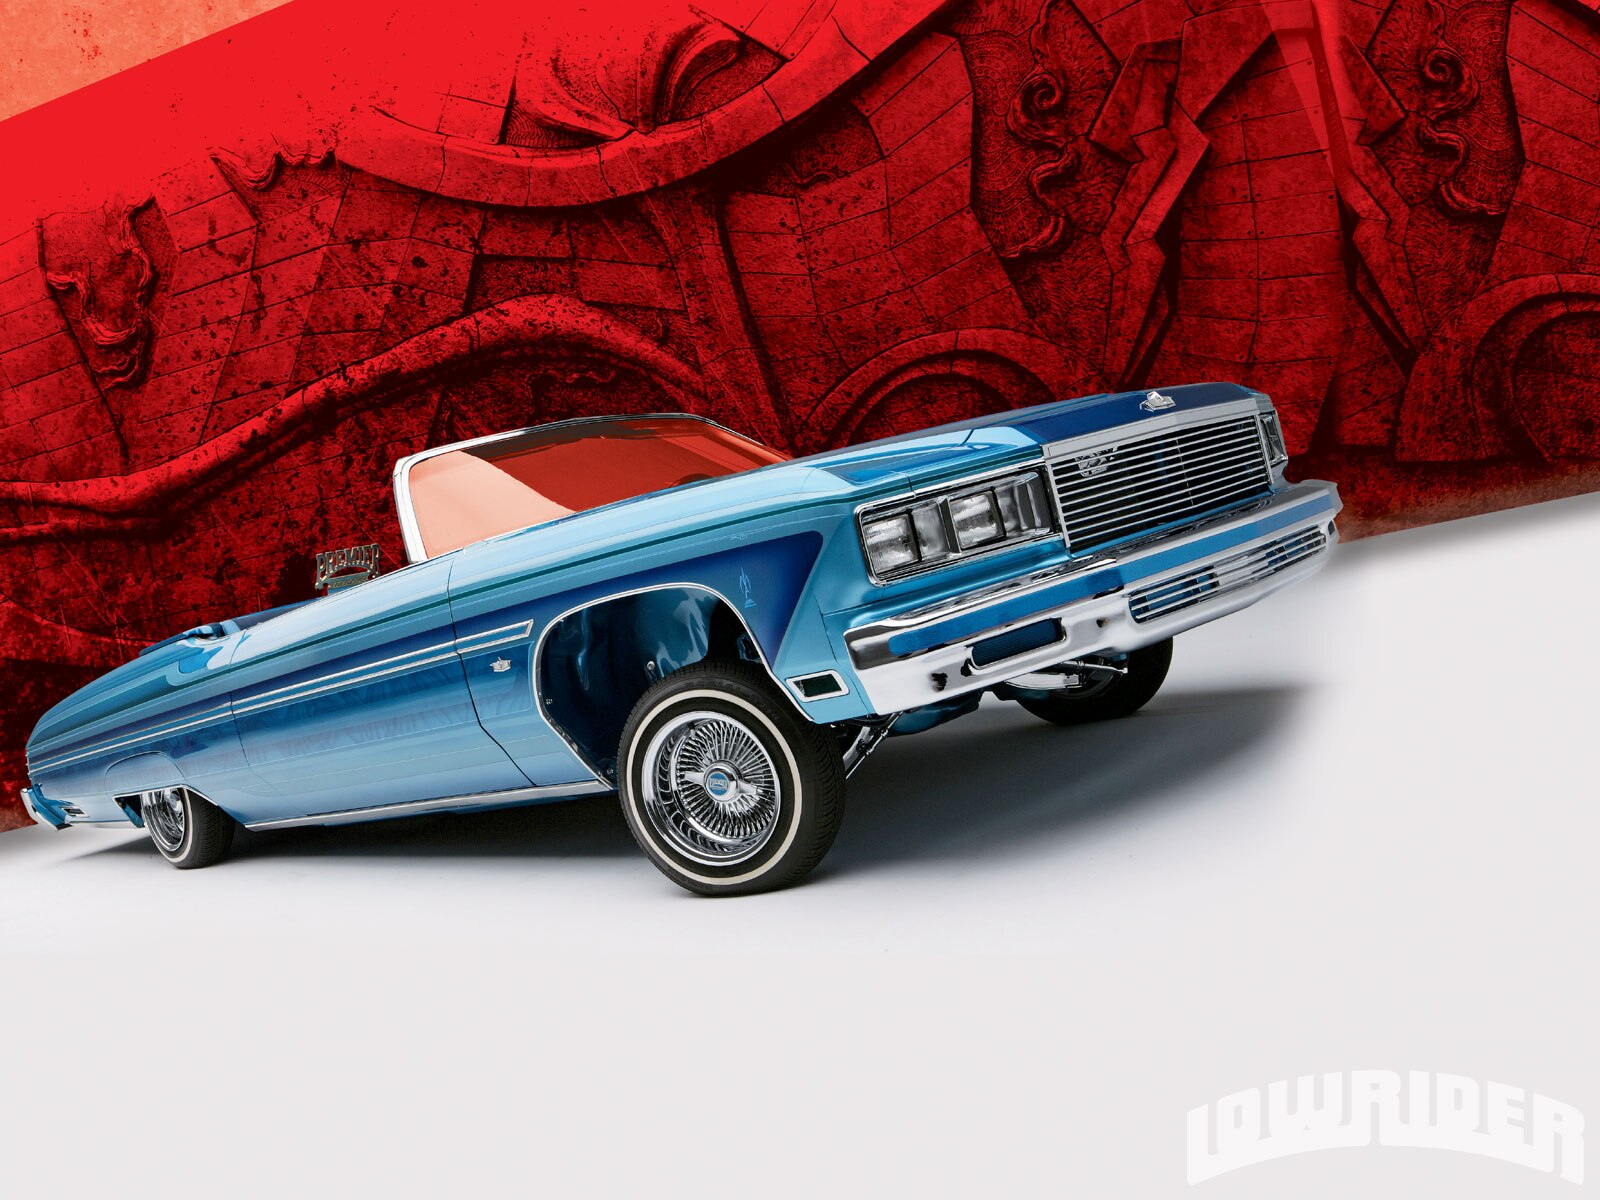 lrmp-1006-04-o-1975-chevrolet-caprice-front-view2